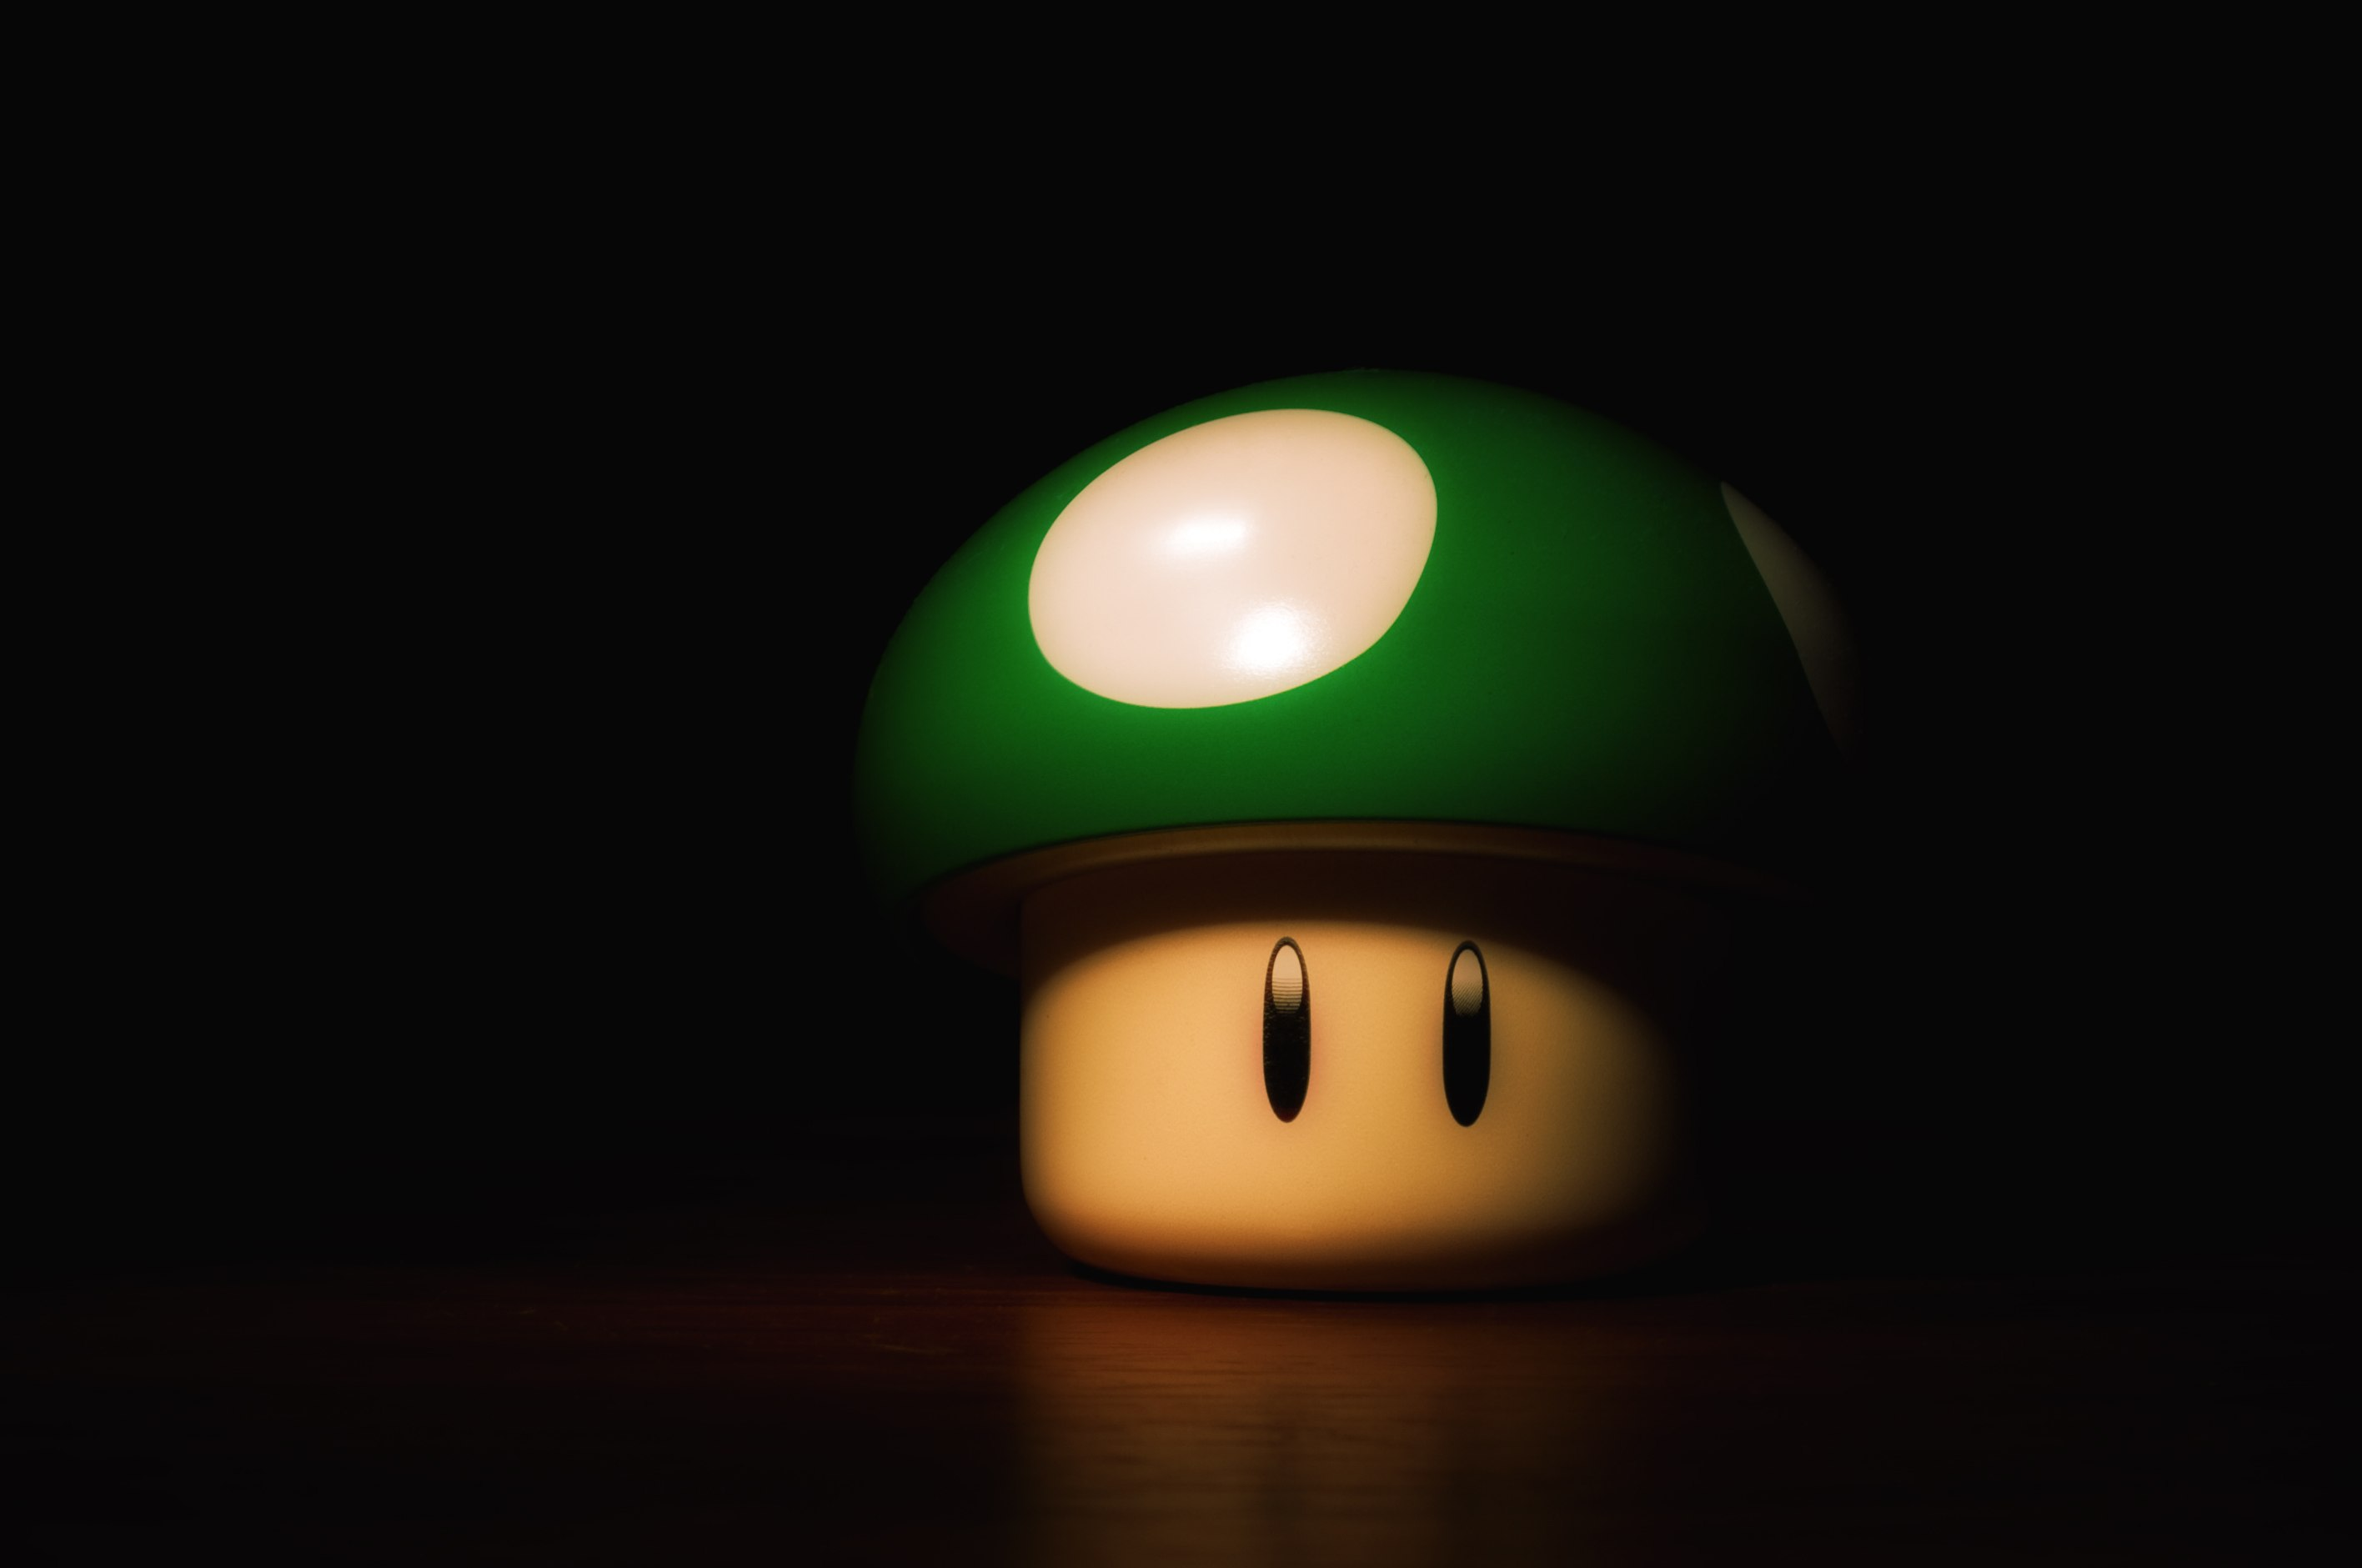 Lol-and-funny-pics-wallpaper-hd-super-mario-fungo-the-masked-gamer